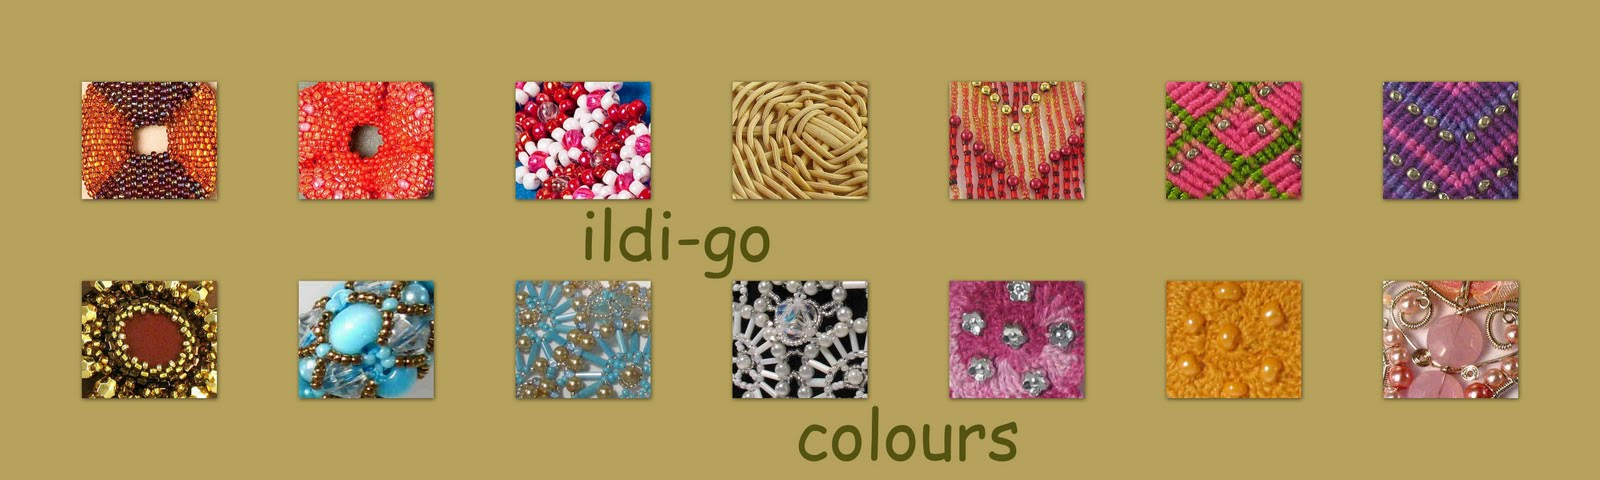 Ildi-go colours